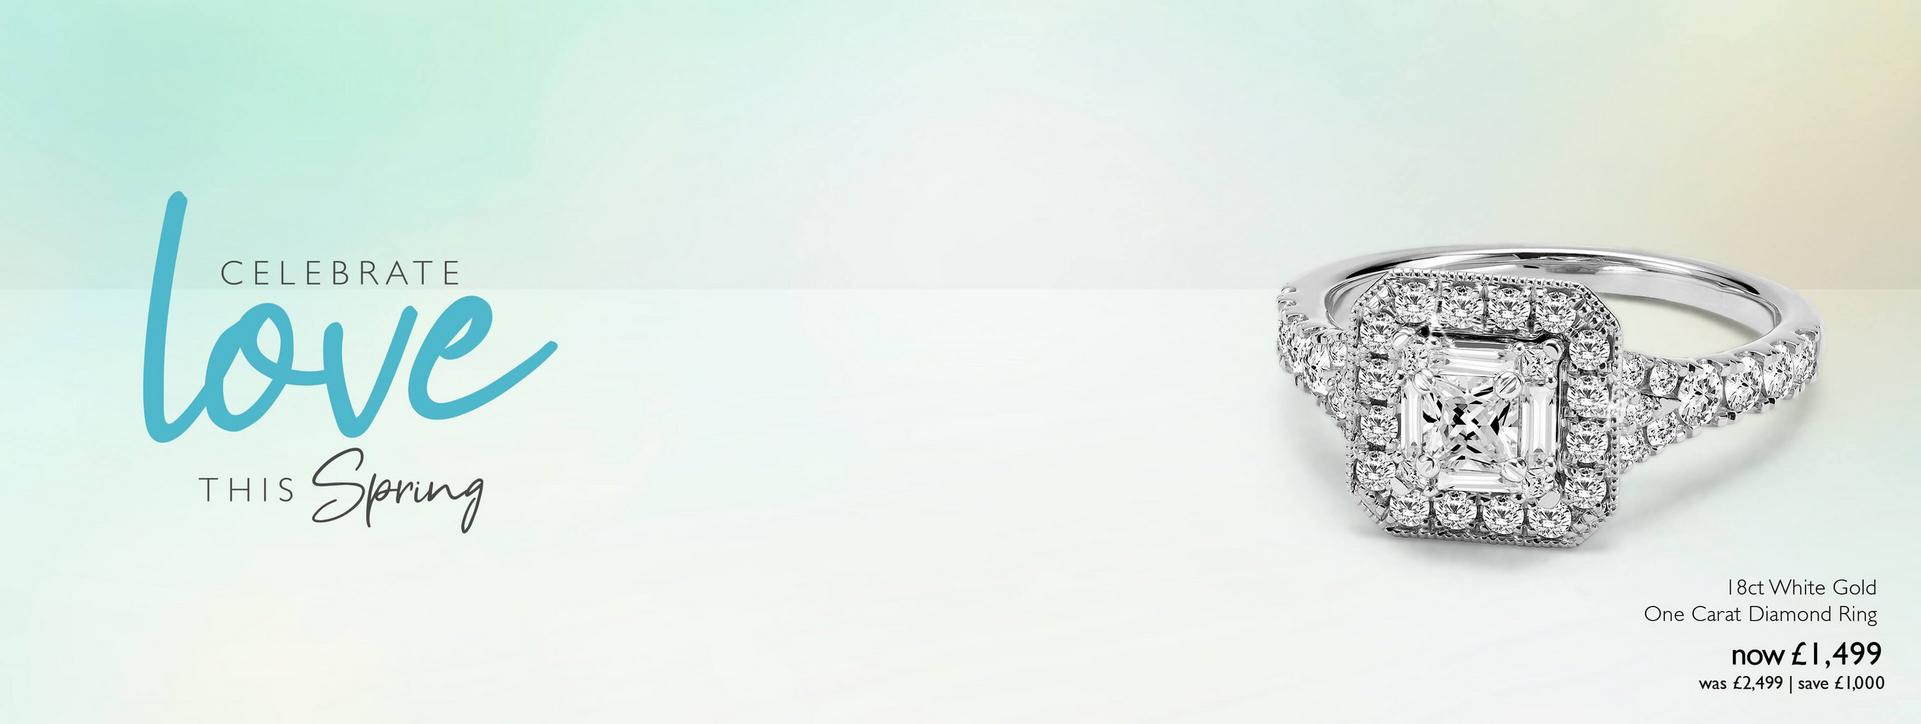 Find their perfect Engagement Ring at Ernest Jones